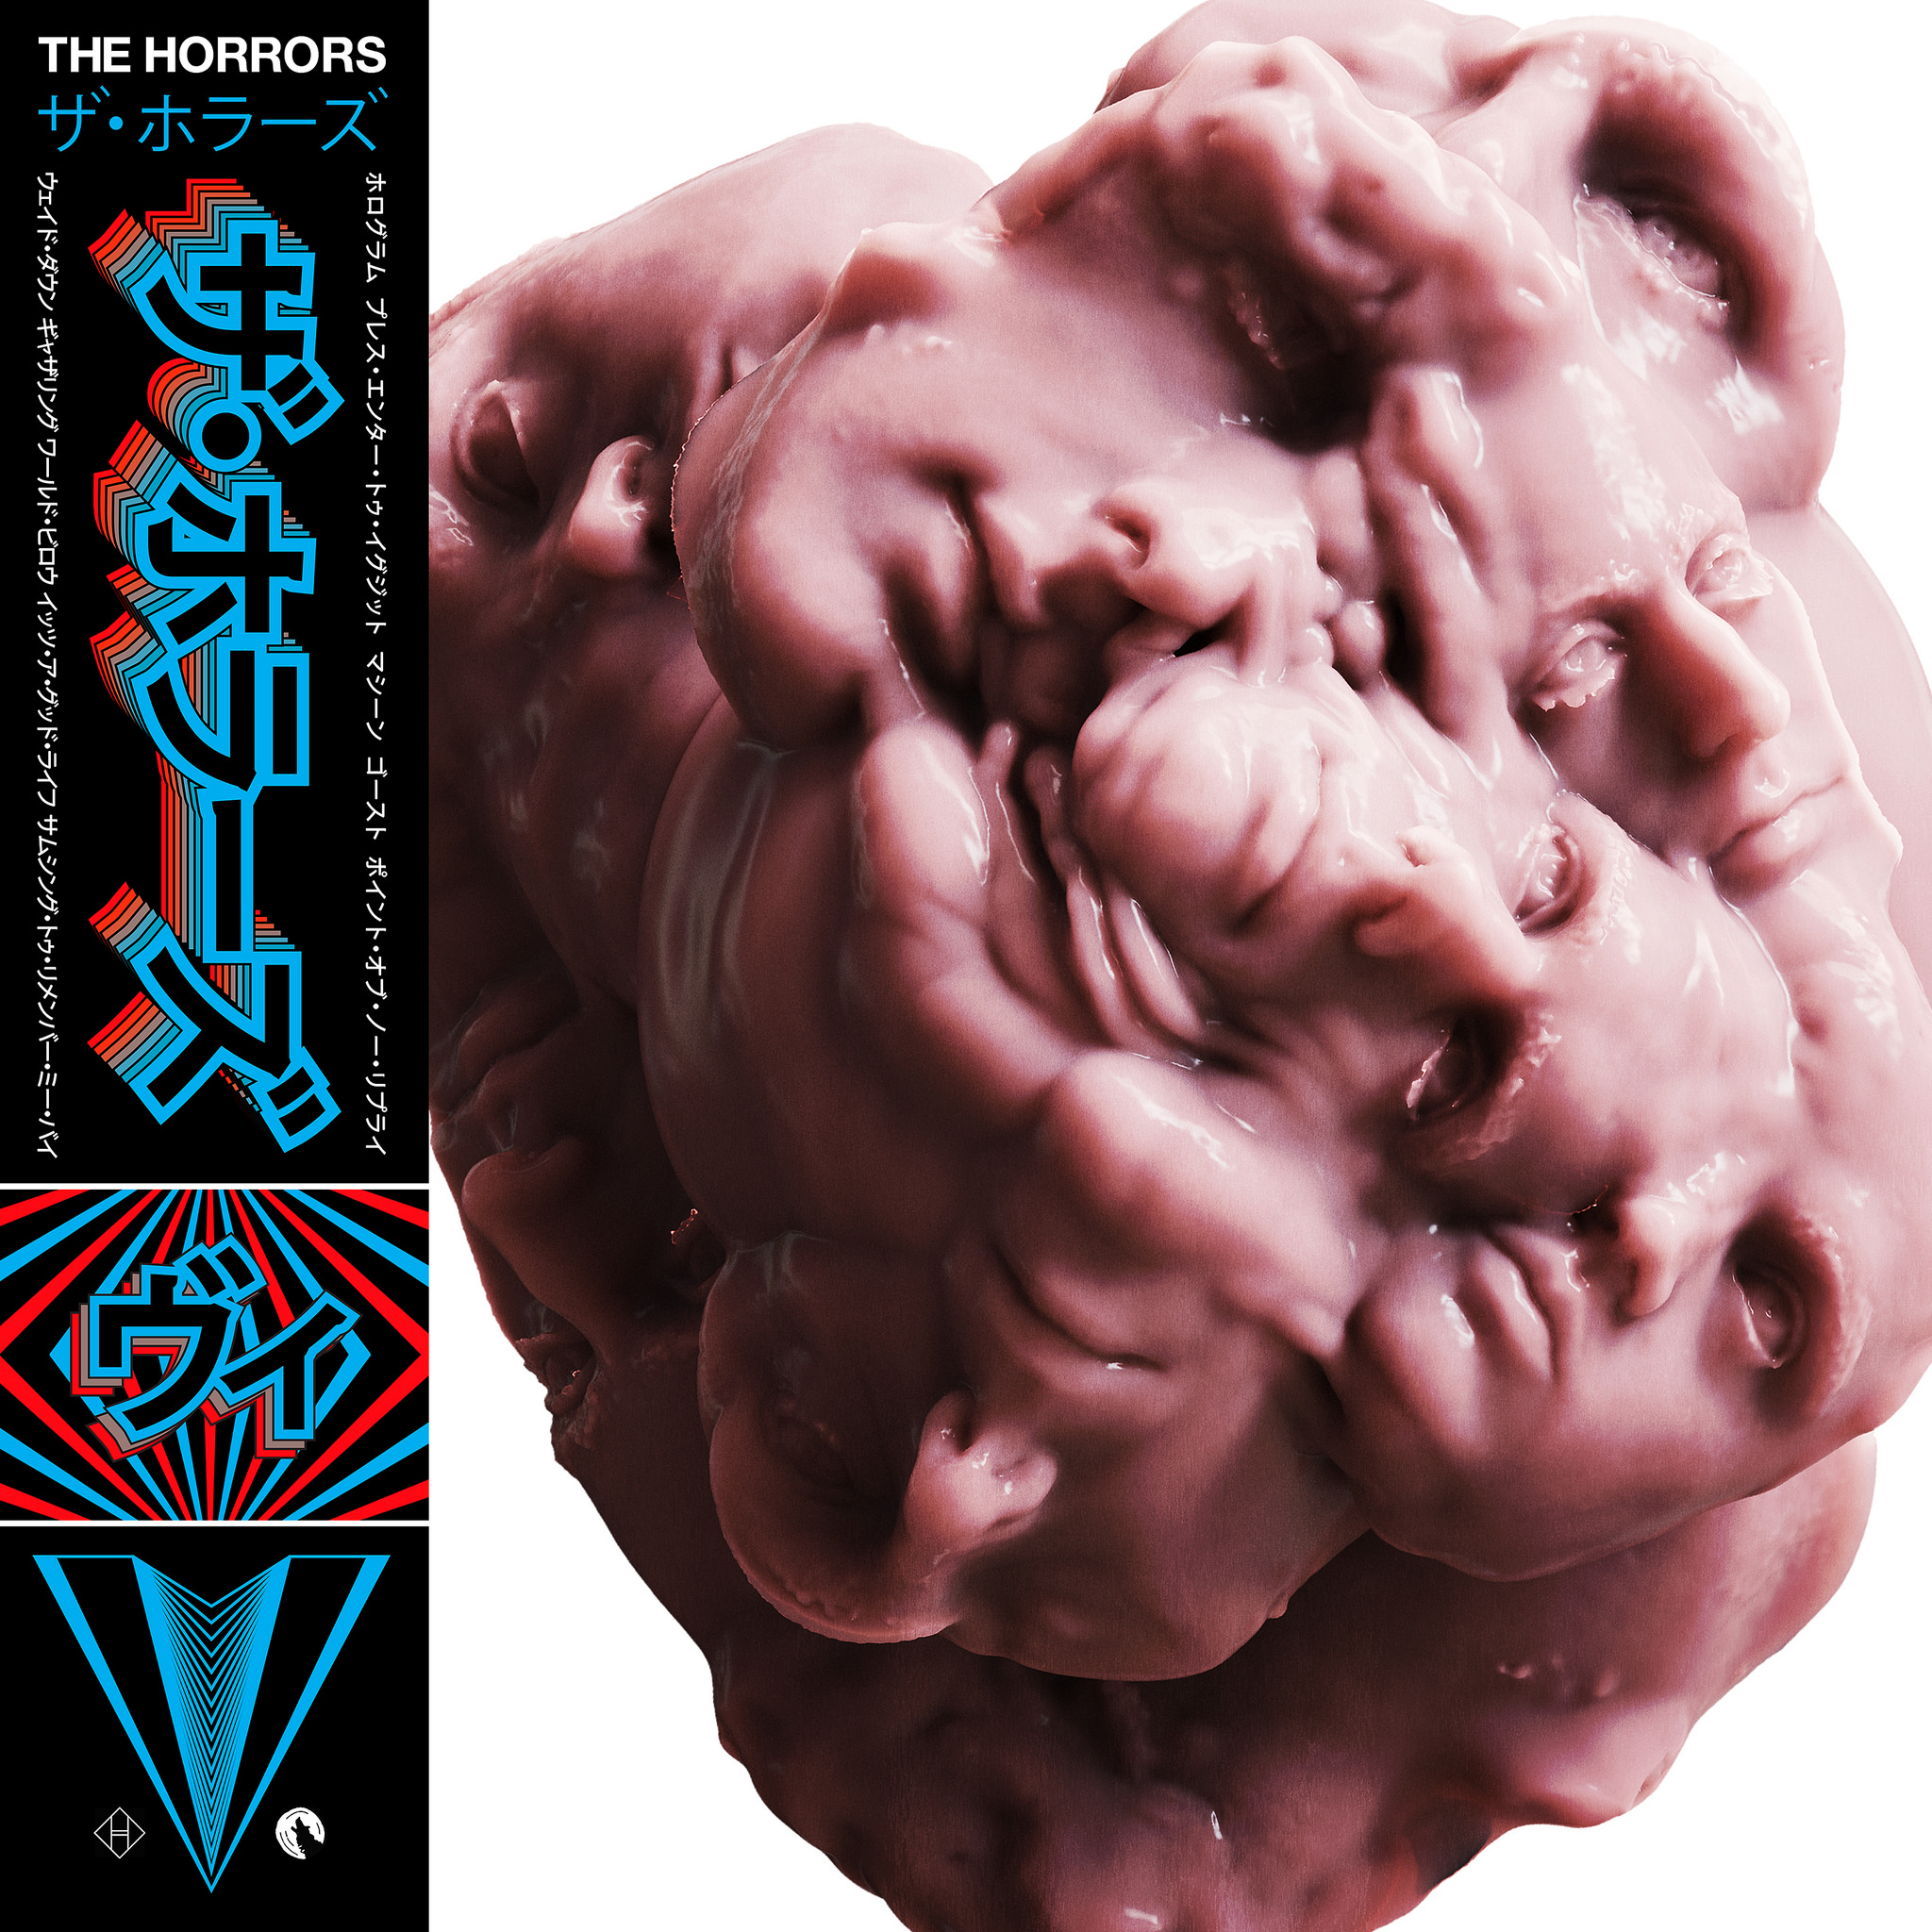 34778128663 13fe2383ba k The Horrors release their fifth album, V: Stream/download